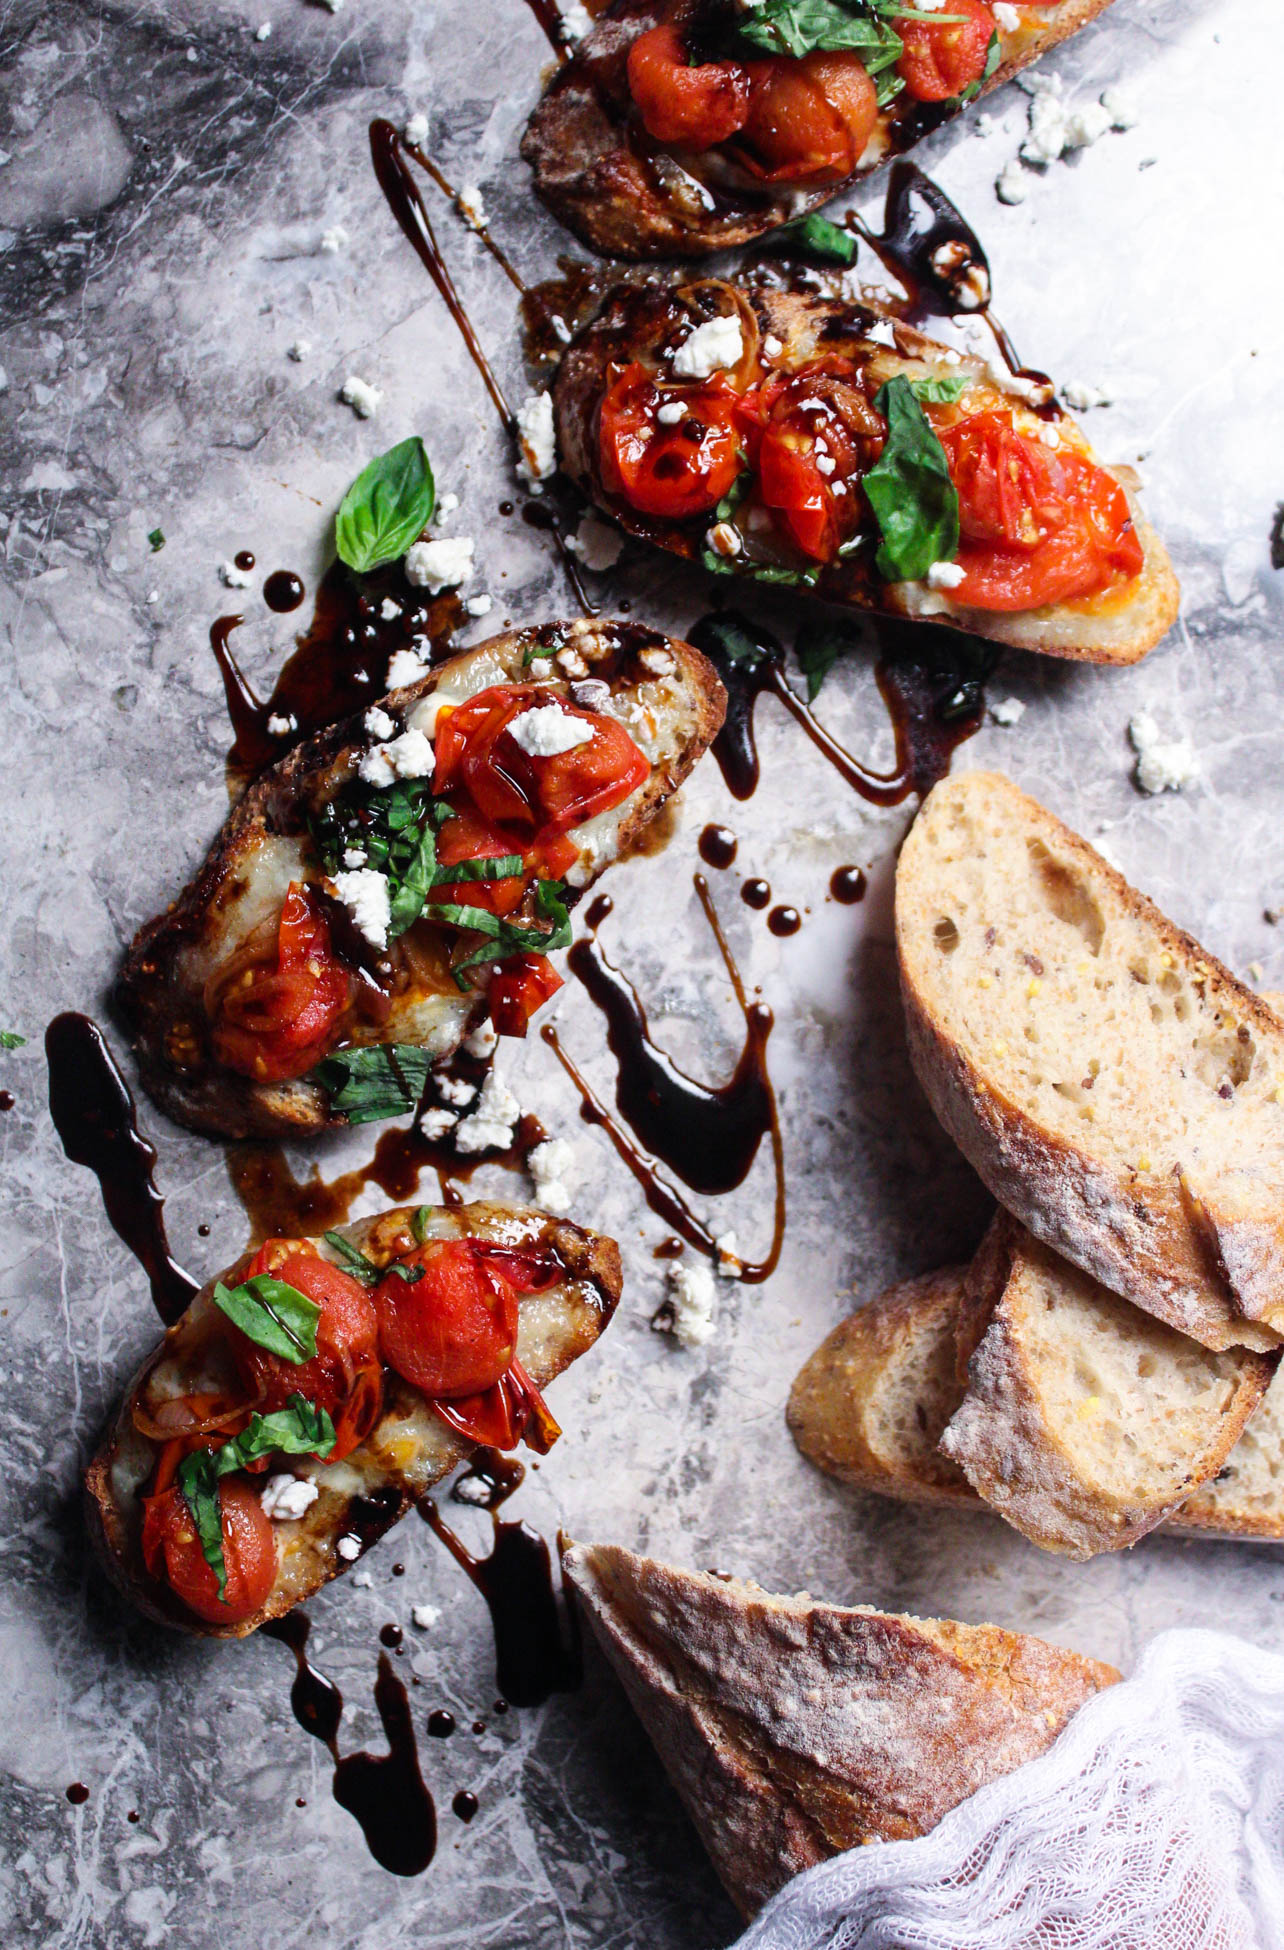 Blistered Tomato Crostini with Gorgonzola an Balsamic Glaze